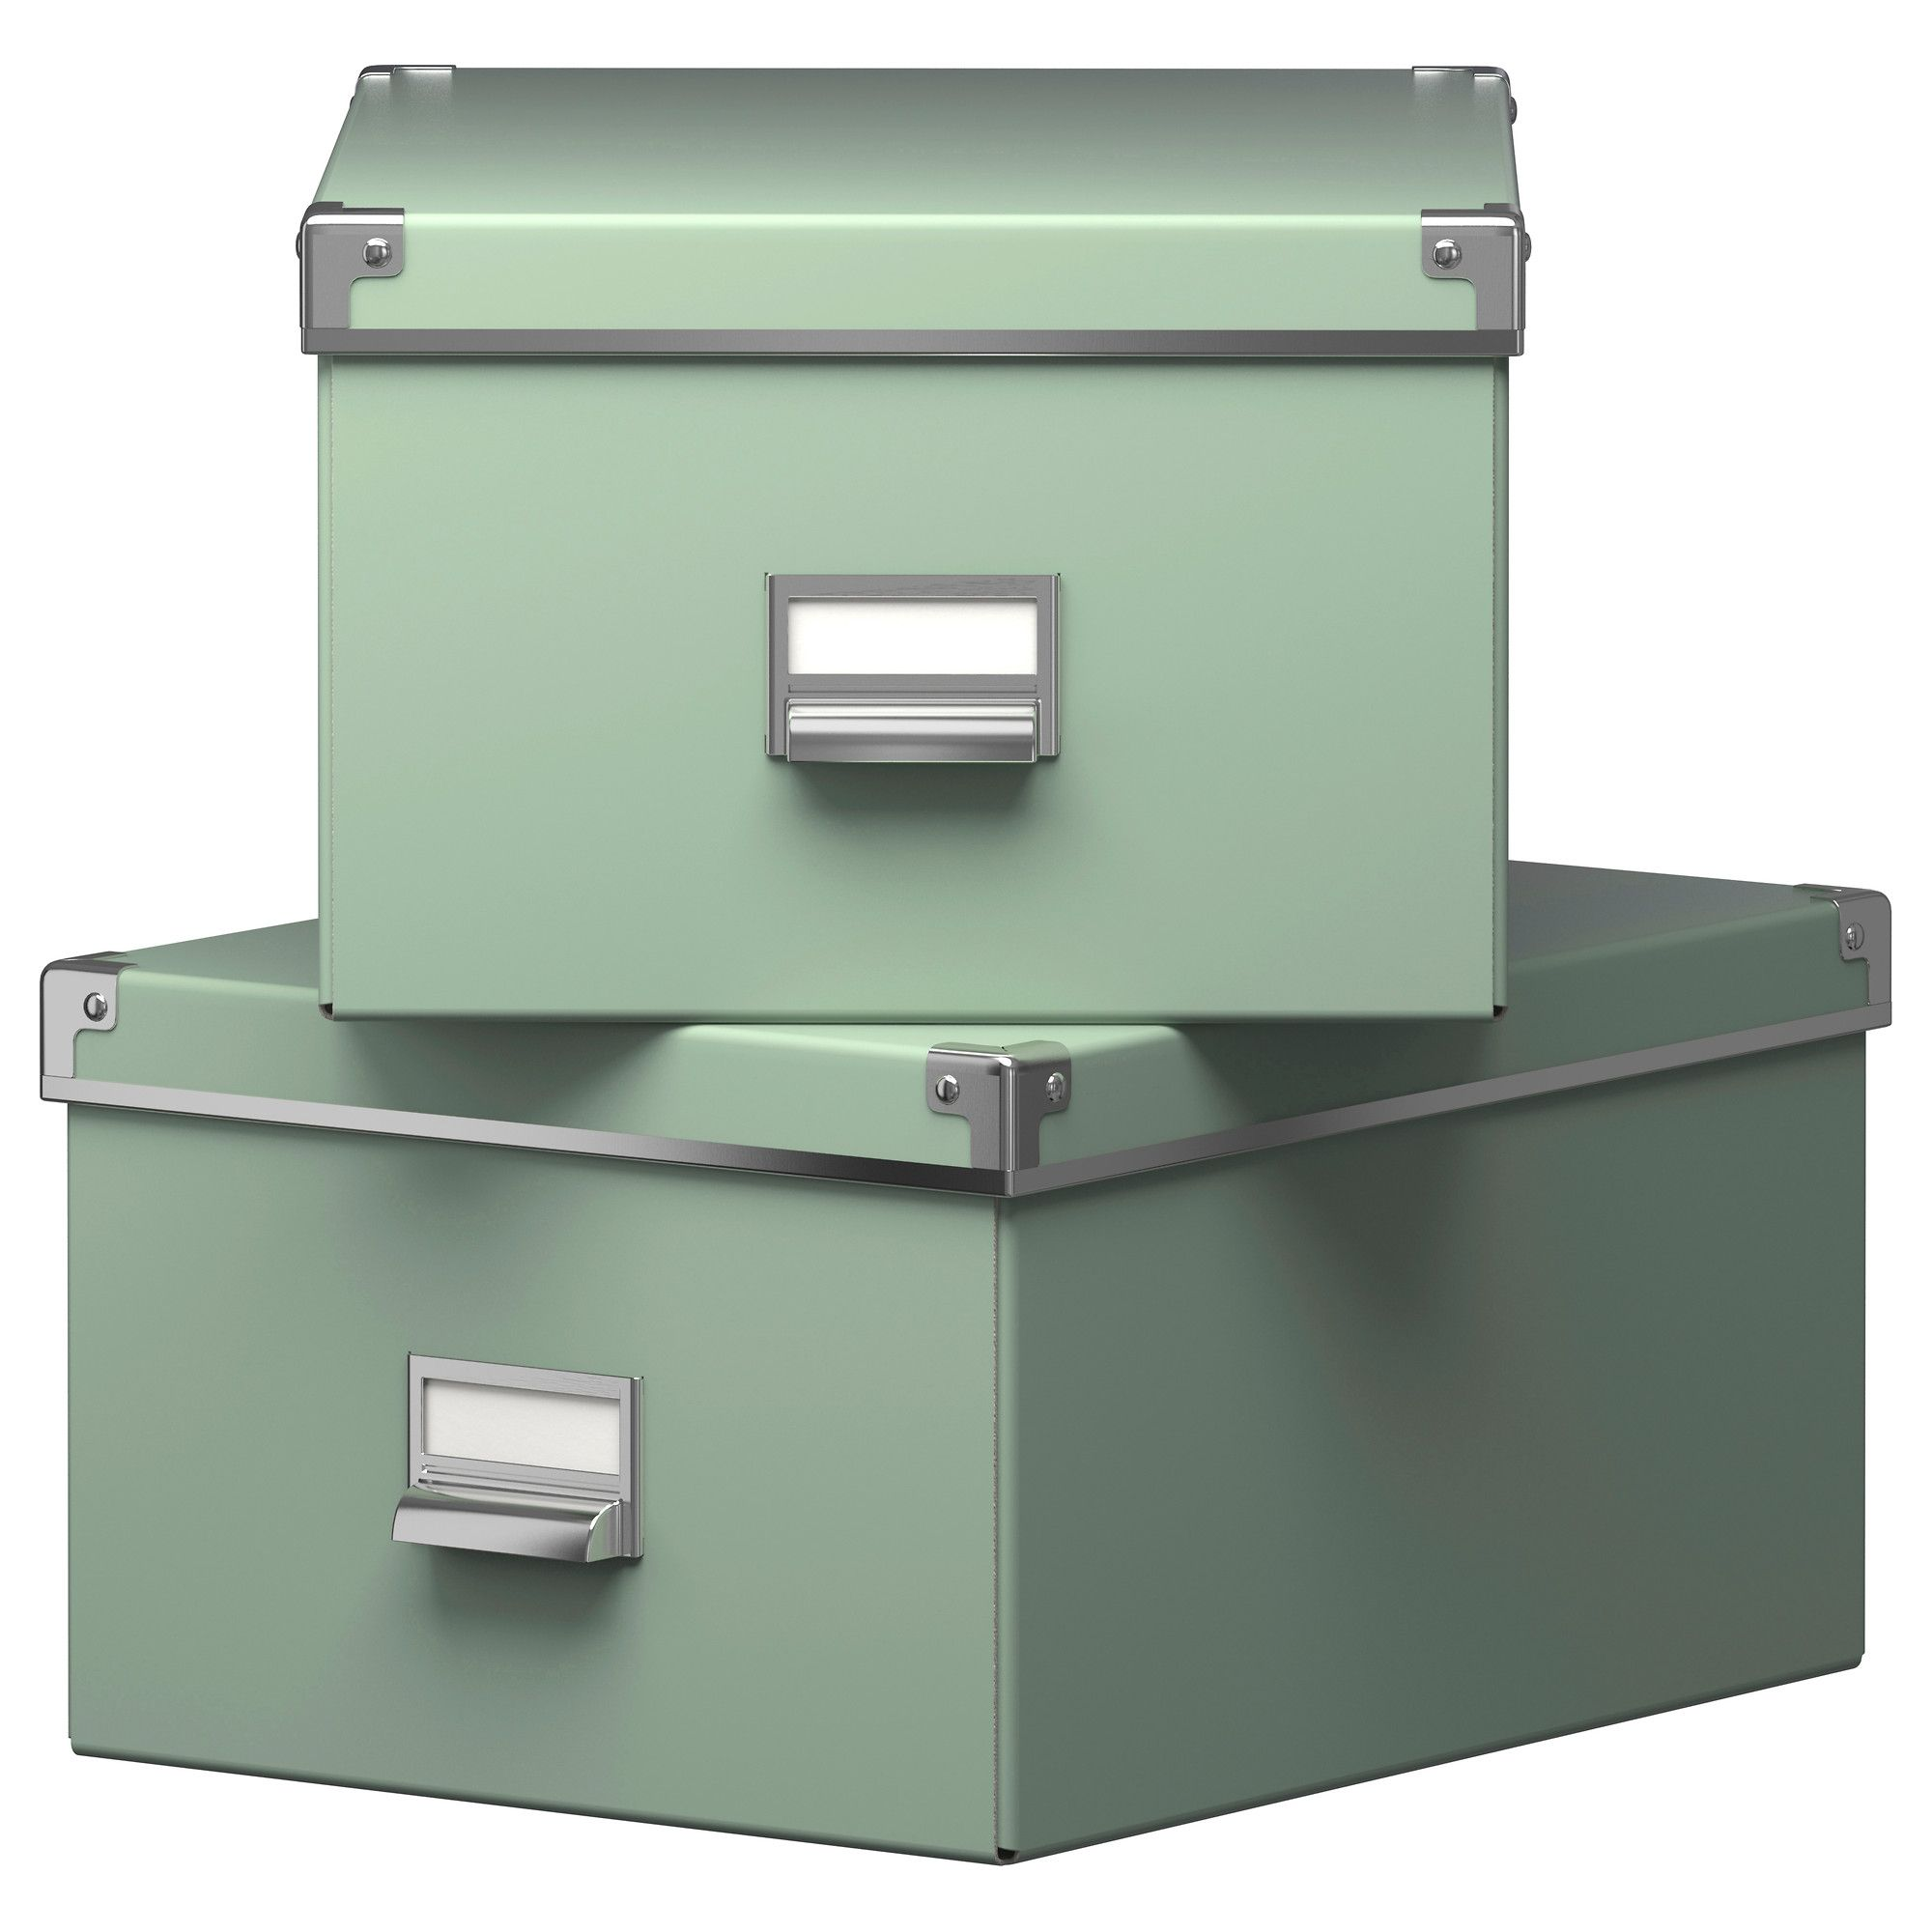 decorative box file storage with design raymond waites bin open handles printed canvas boxes cardboard decor